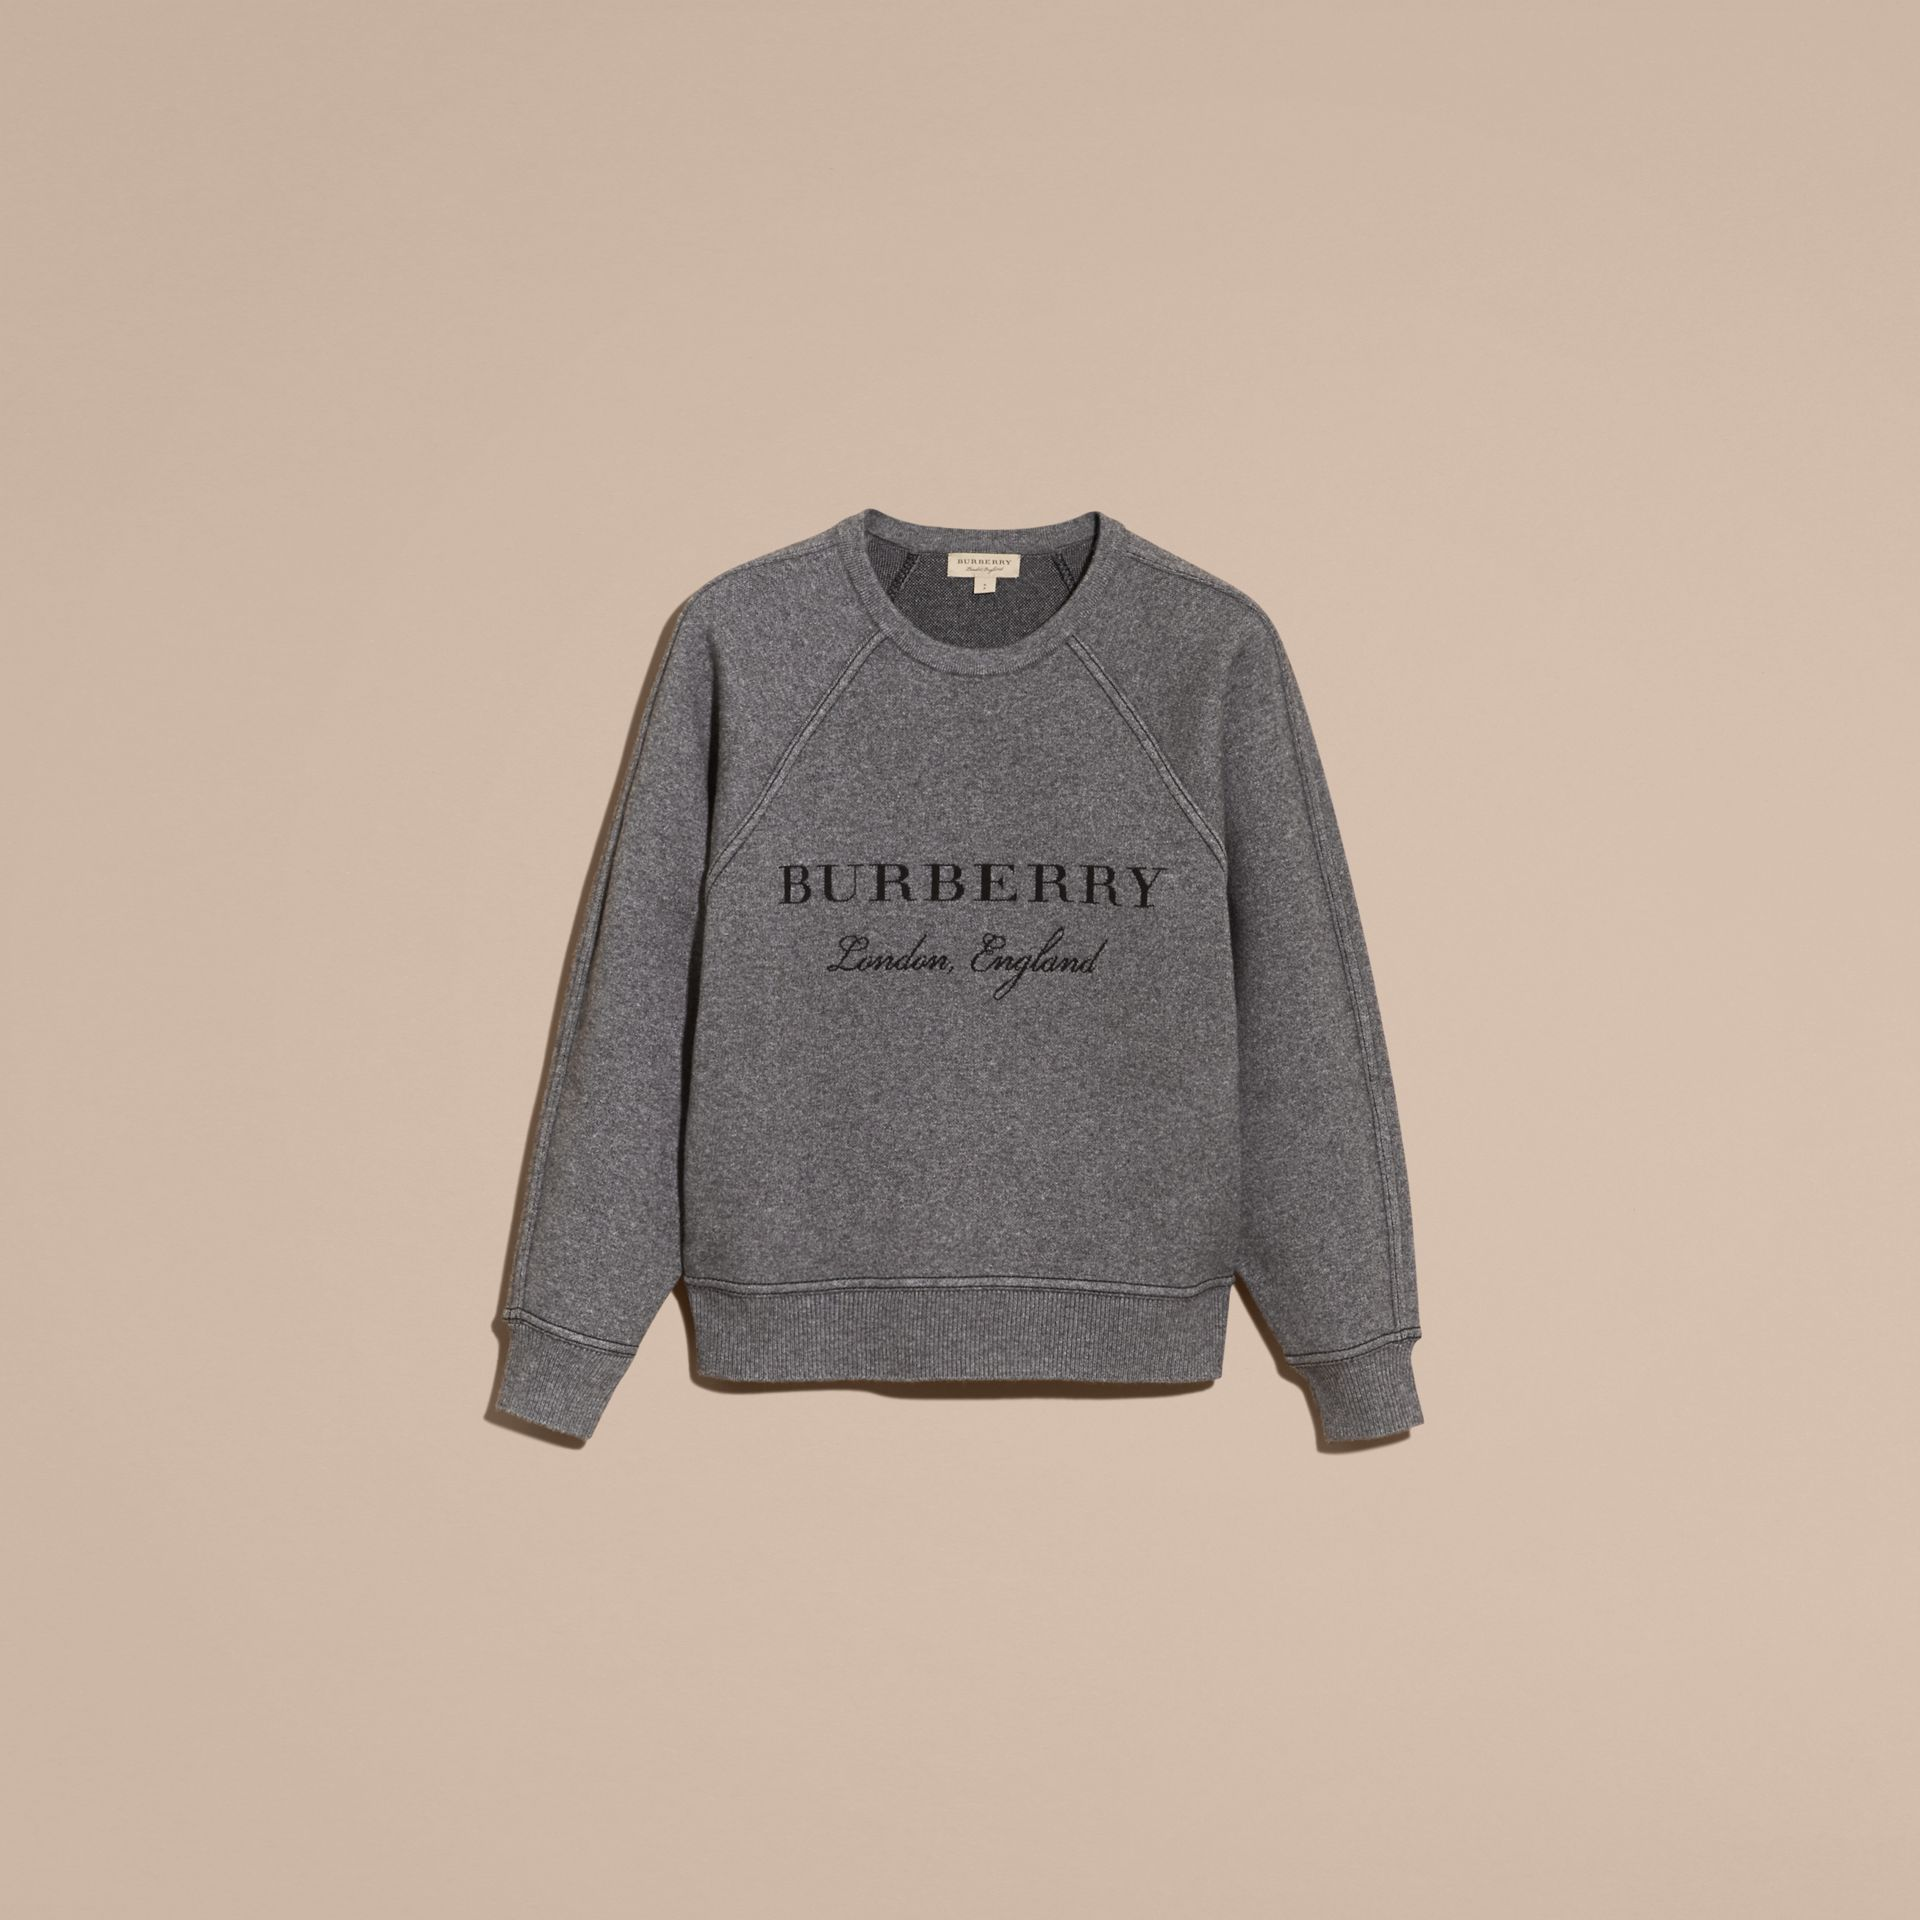 Topstitch Detail Wool Cashmere Blend Sweater in Mid Grey Melange - Women | Burberry Canada - gallery image 4